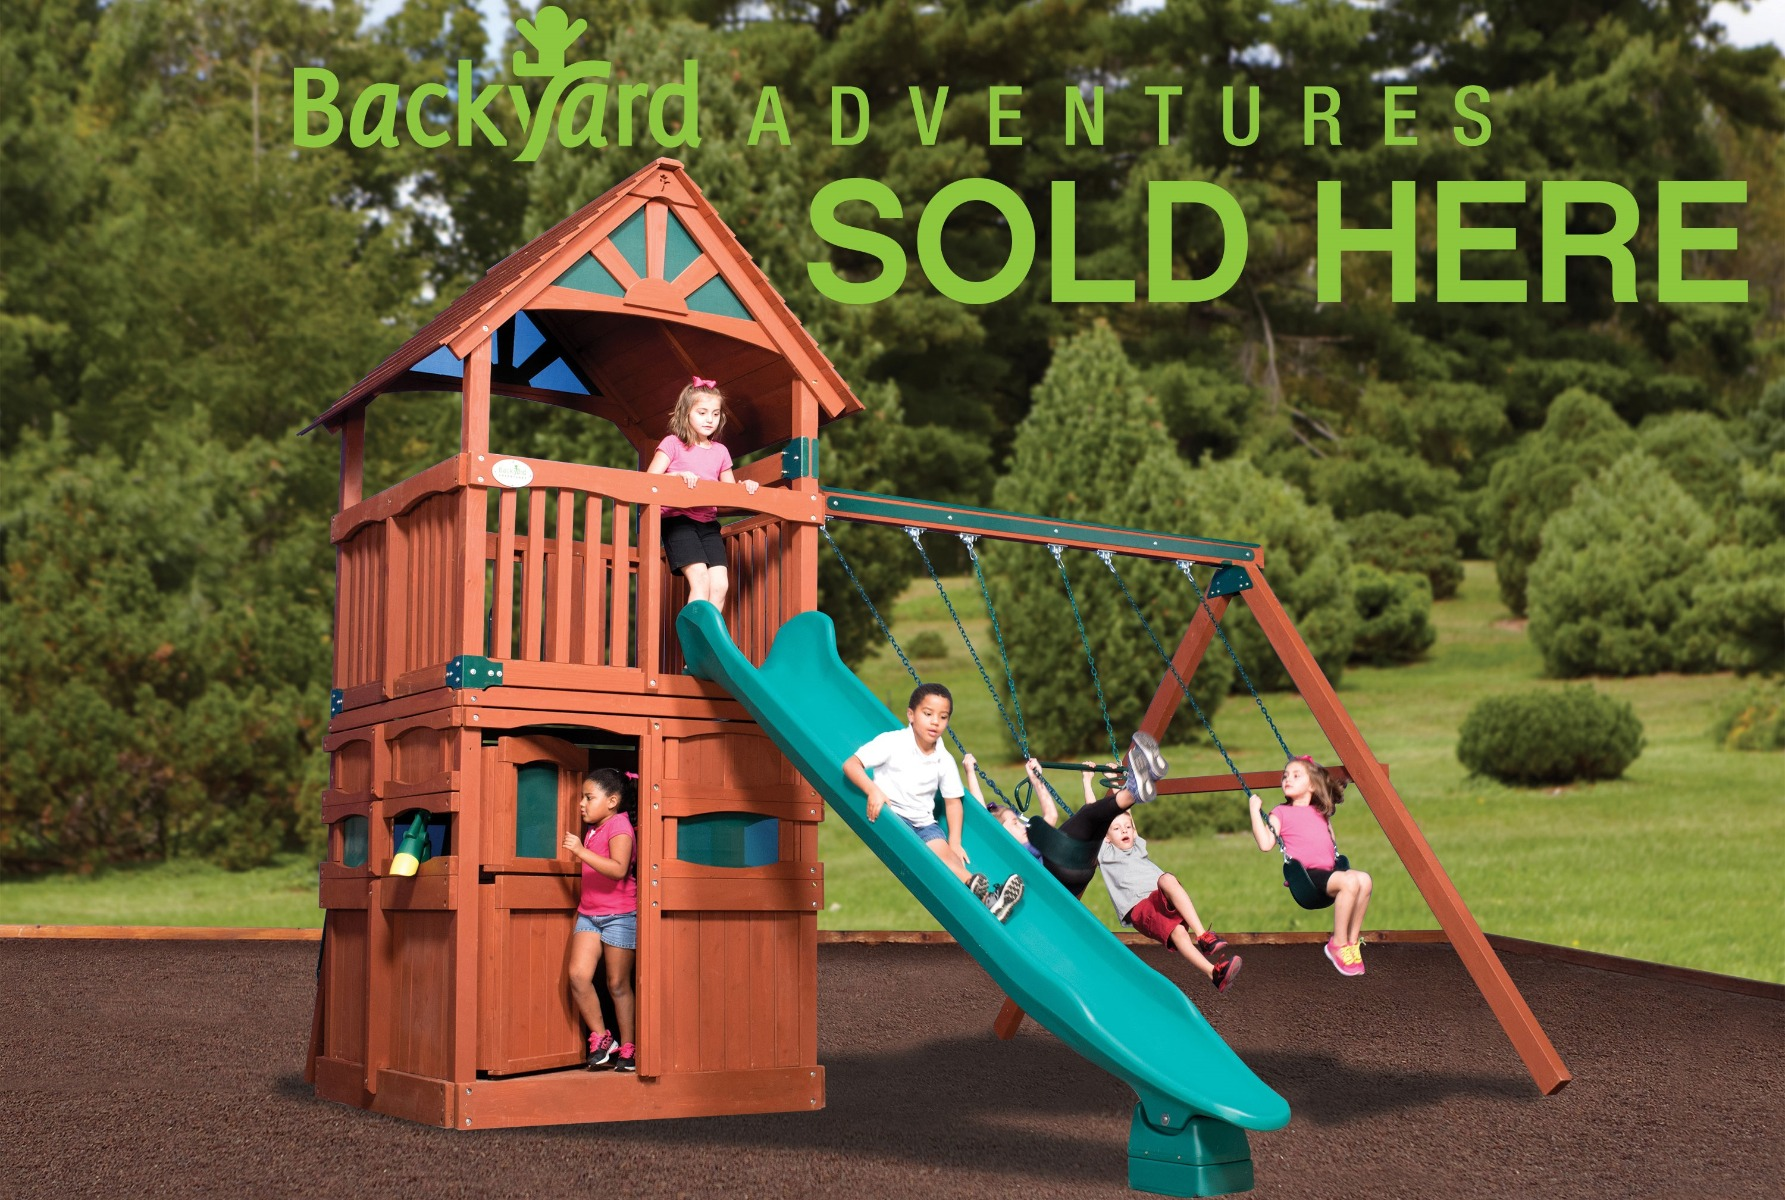 Backyard Adventures Playstructures Sold Here